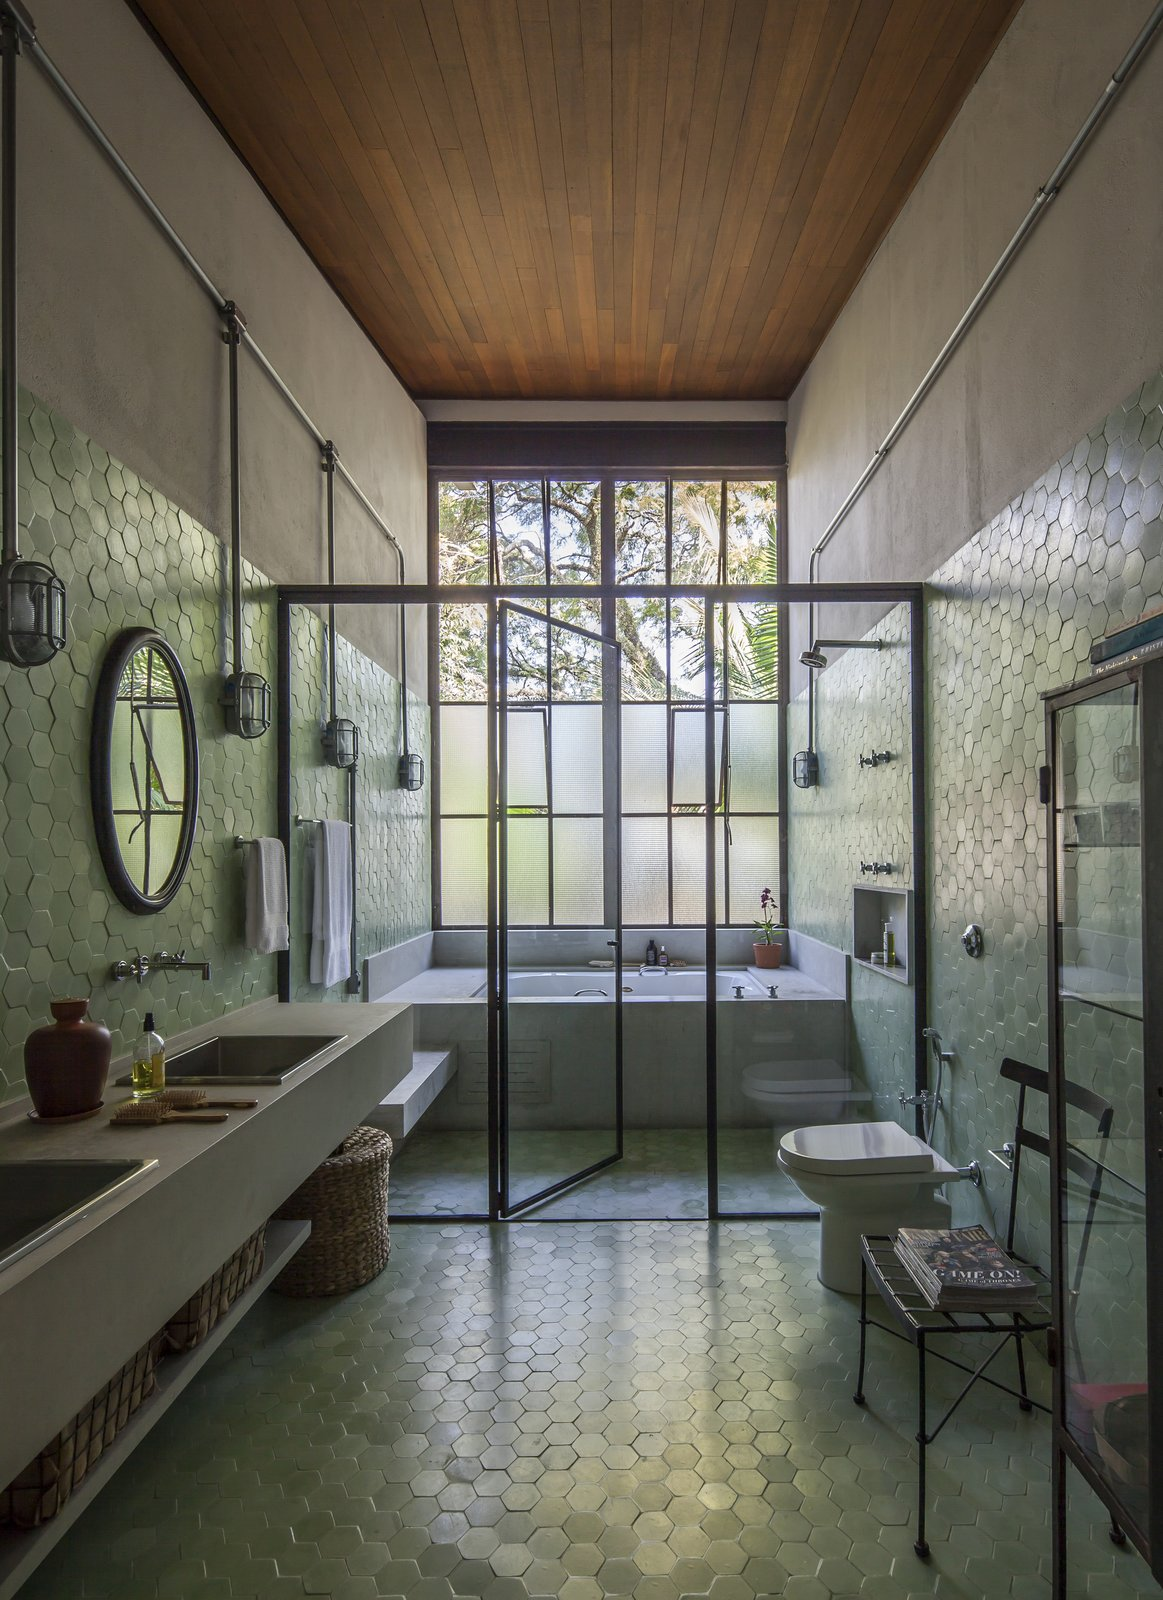 Bath Room, Ceramic Tile Floor, Enclosed Shower, One Piece Toilet, Wall Mount Sink, Wall Lighting, and Mosaic Tile Wall  Conde D'eu House